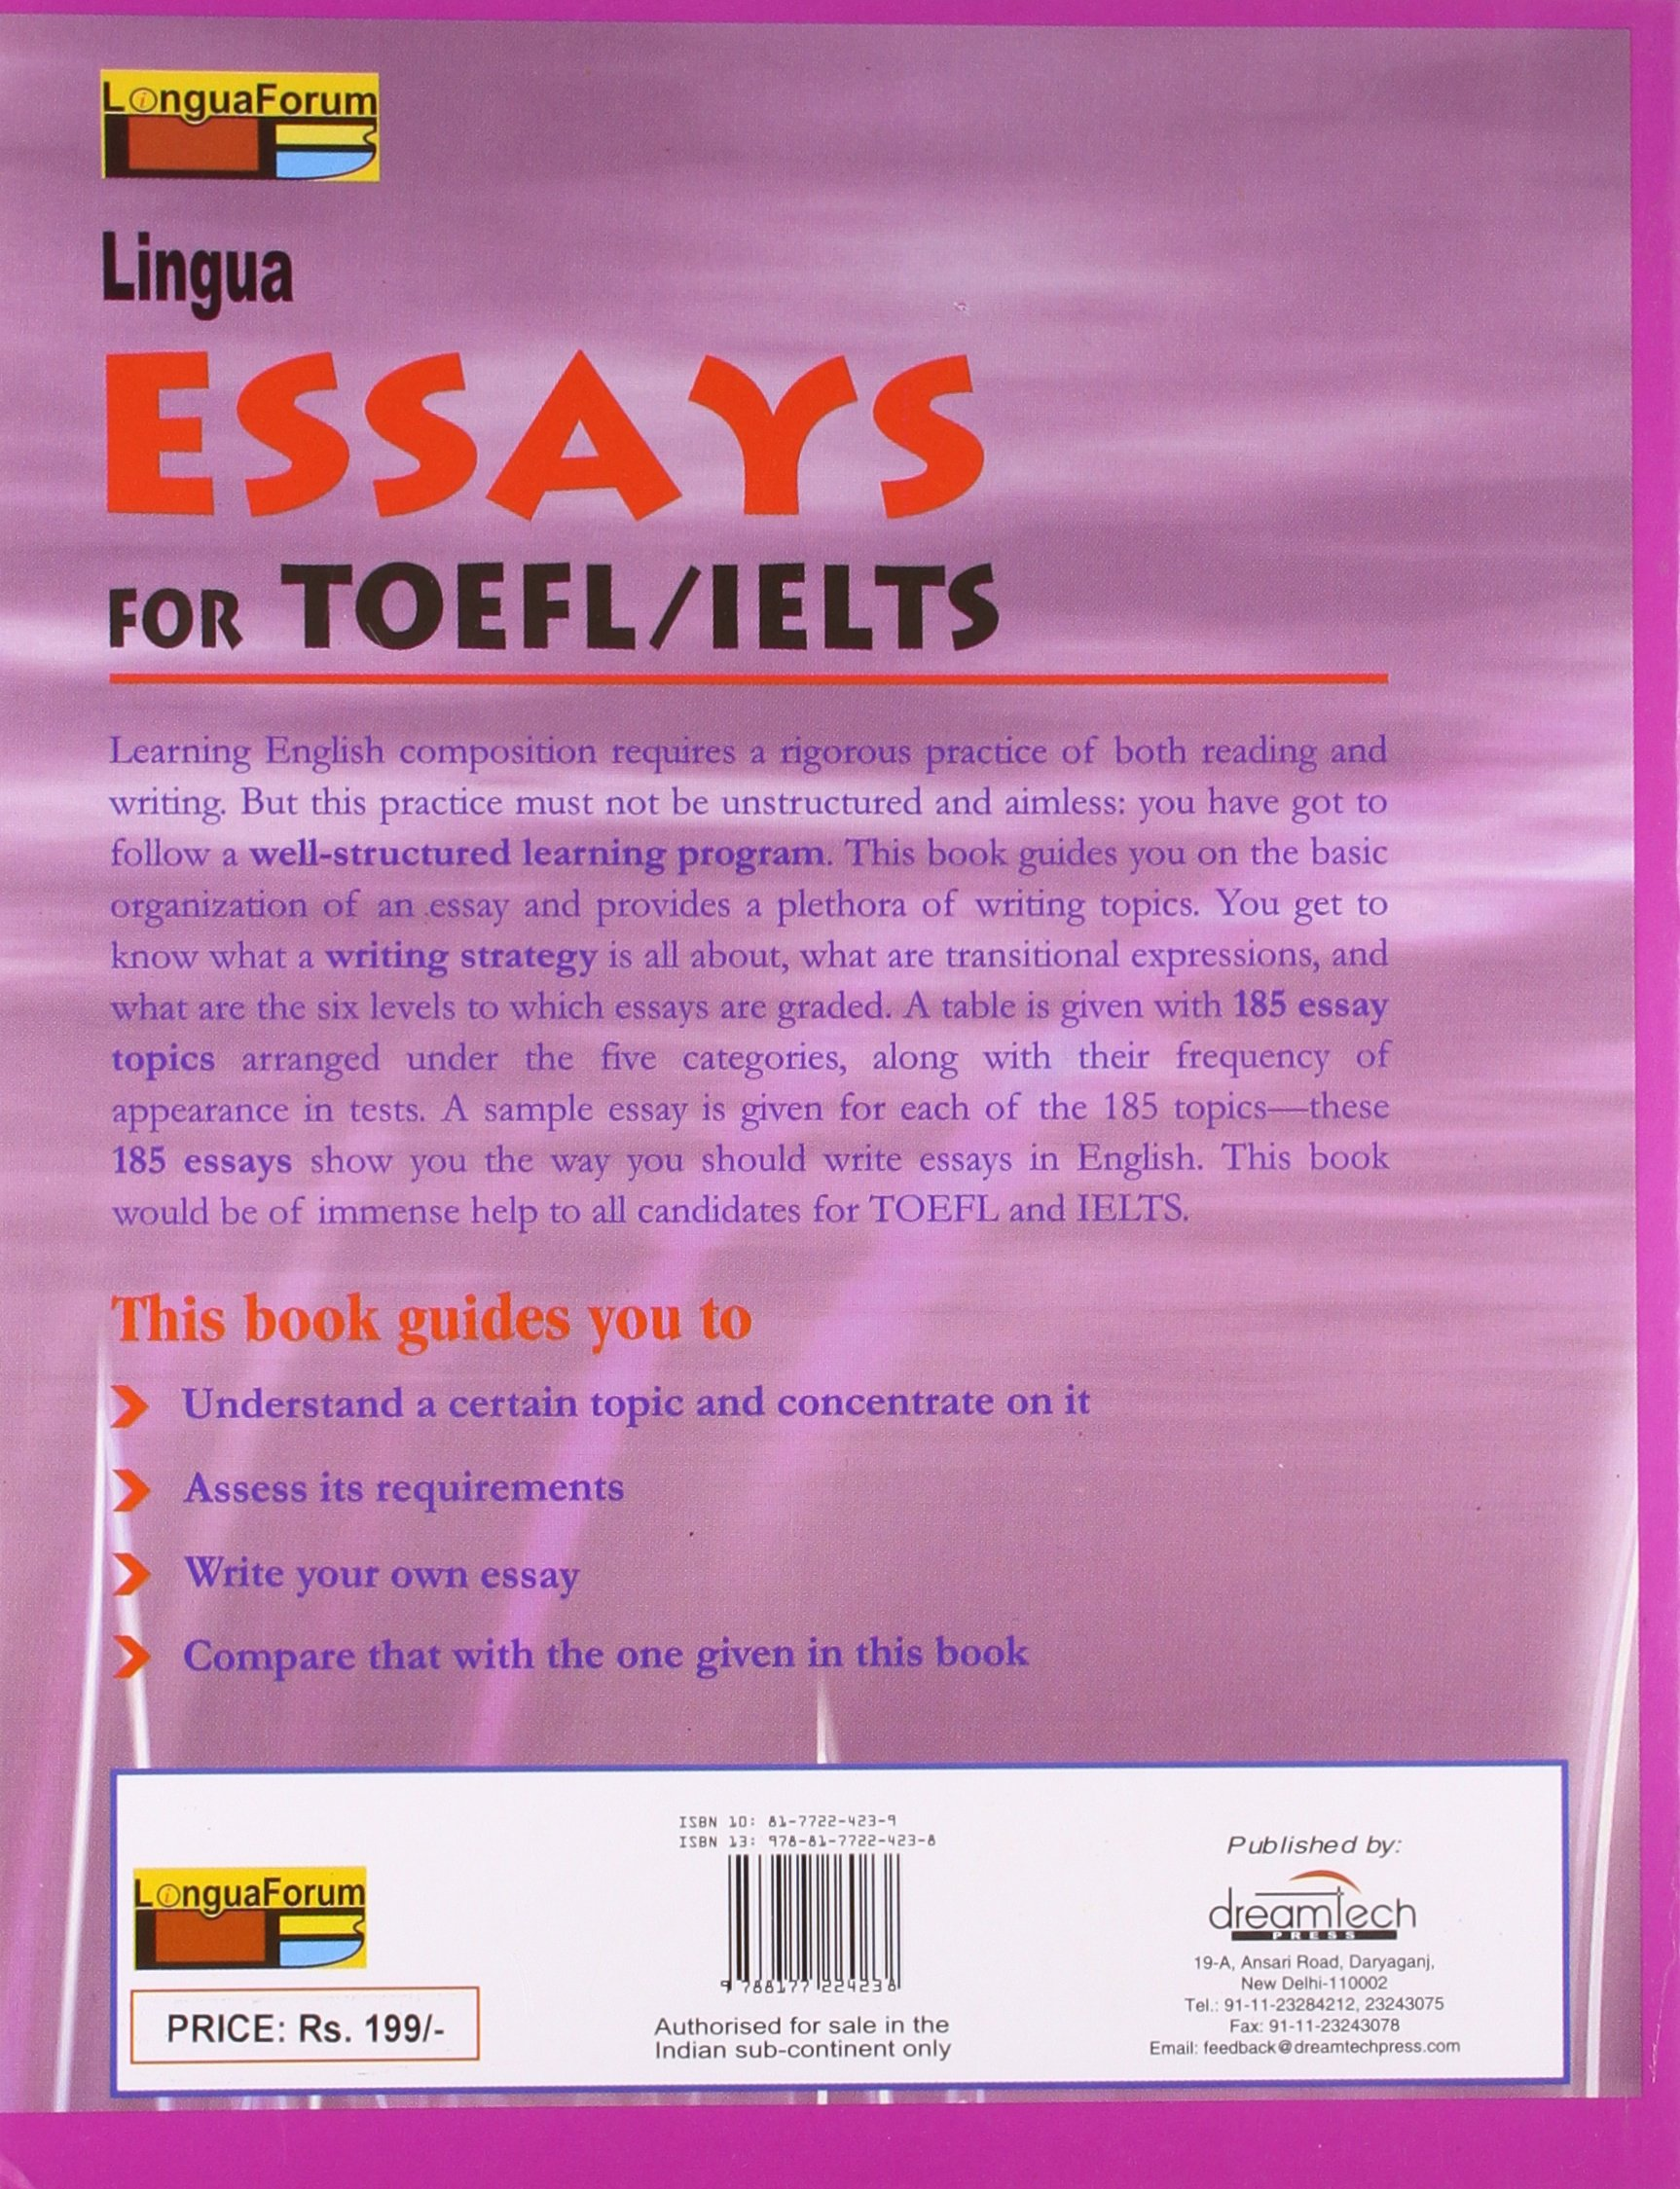 essayforum ielts Check out ielts writing actual tests from june to december, 2016 in canada, india, australia, uk, philippines, us, bangladesh, singapore, hong kong, vietnam.